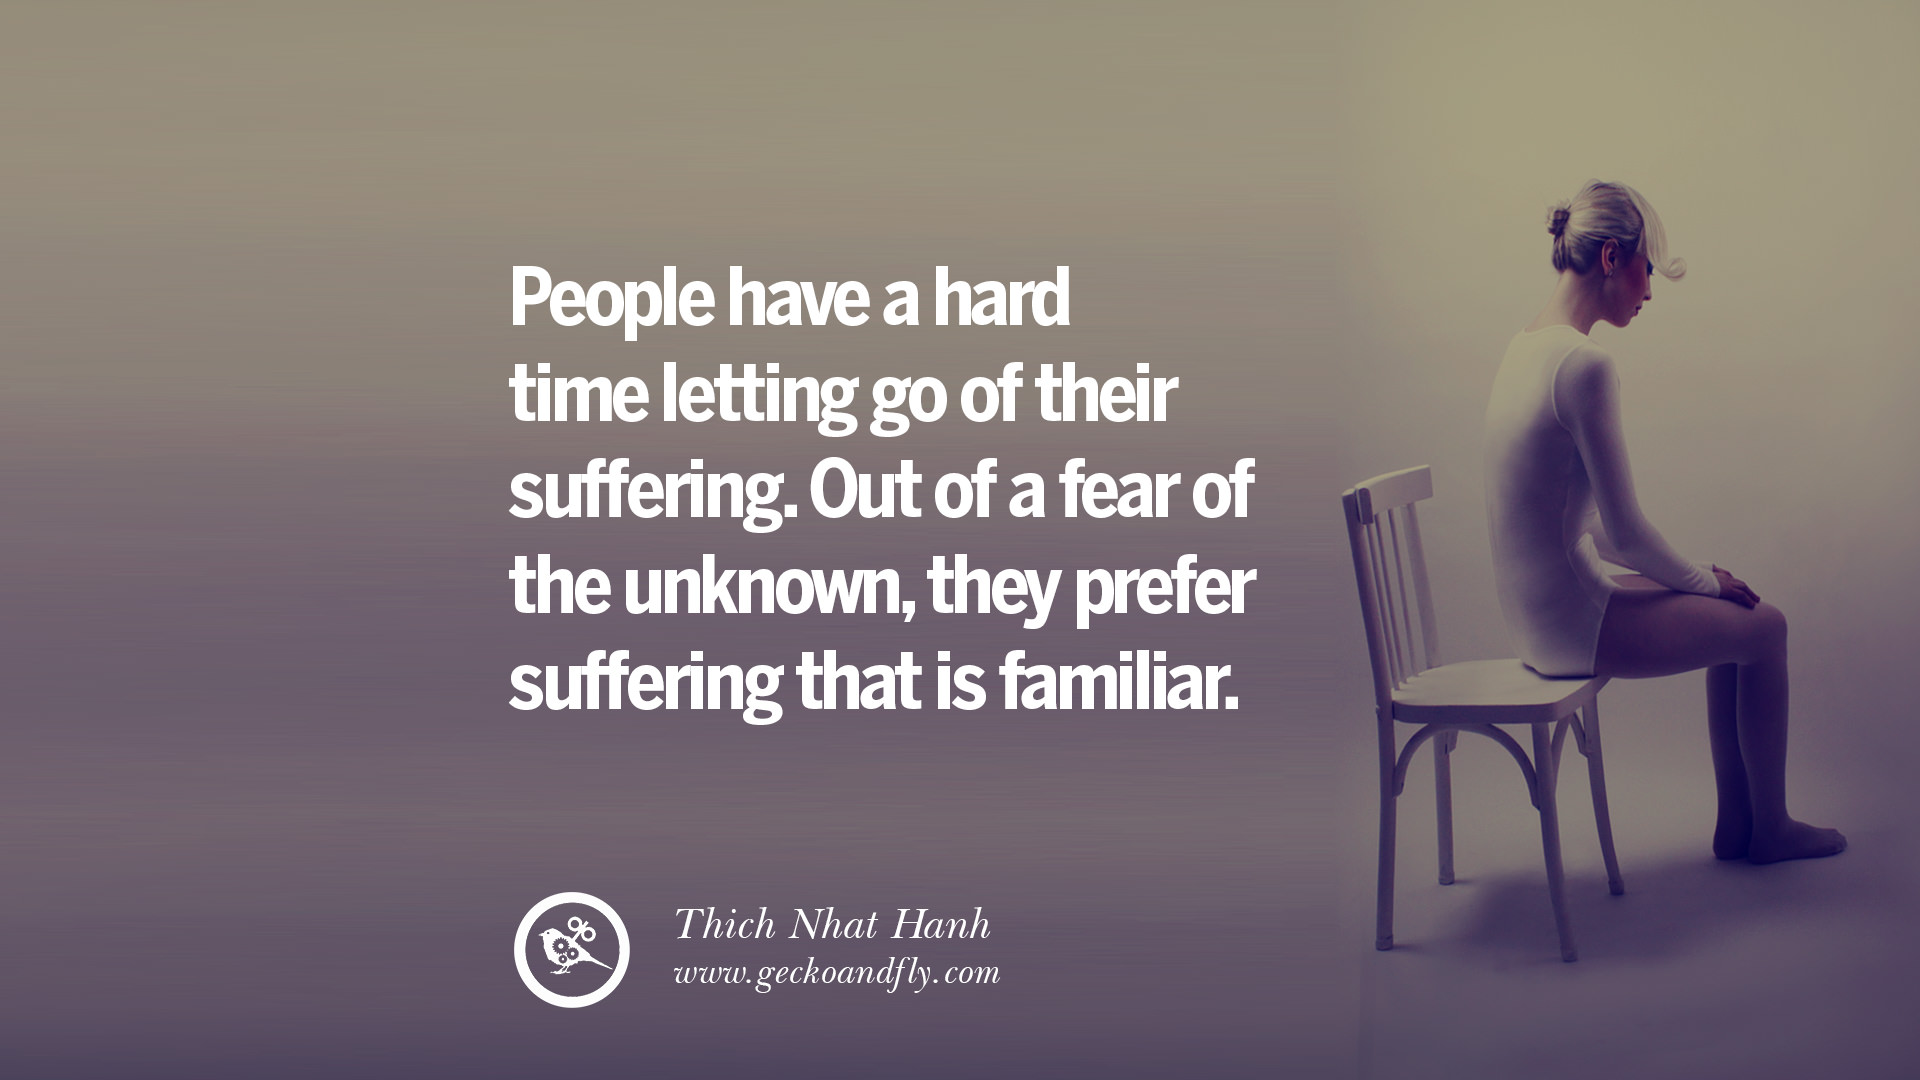 People have a hard time letting go of their suffering Out of a fear of